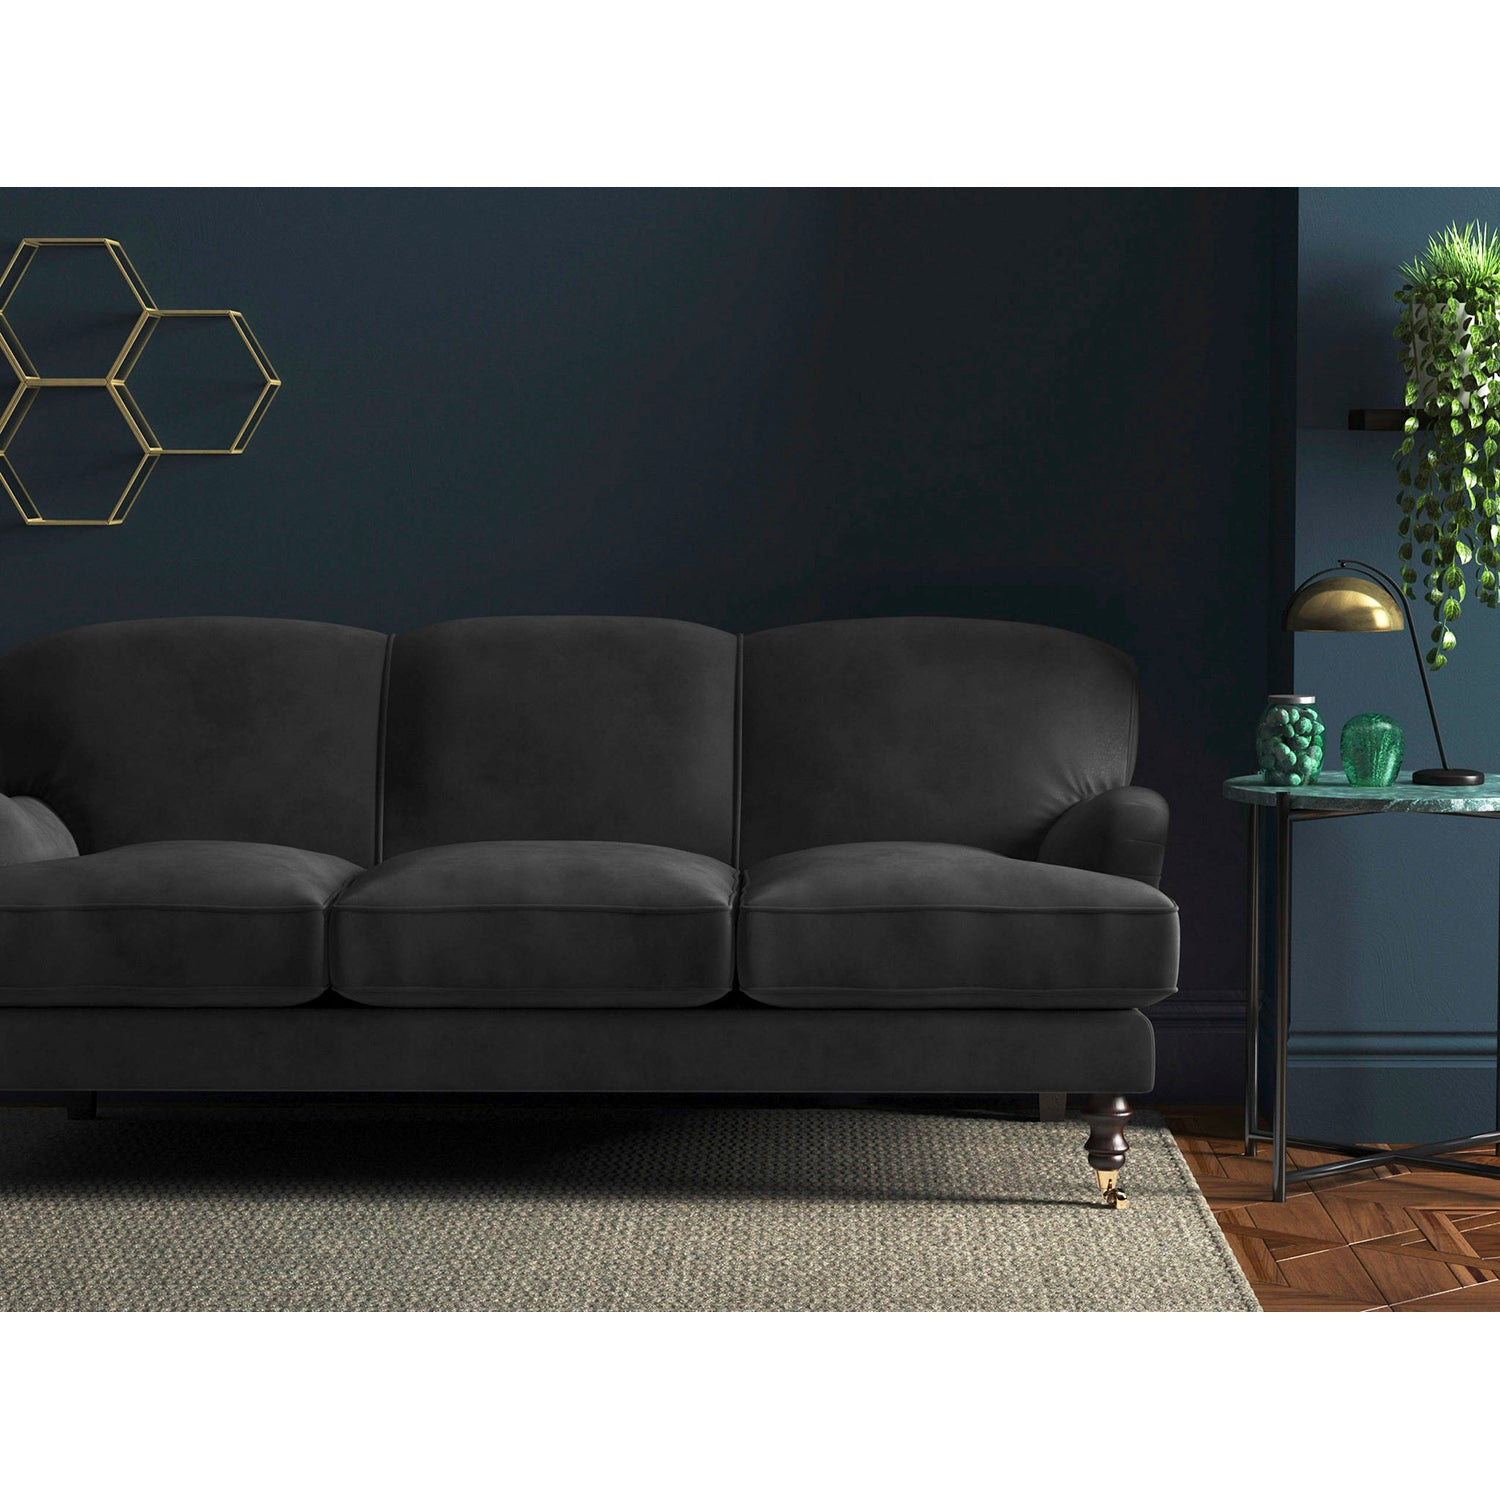 Sofa in a plain dark grey velvet upholstery fabric for domestic and contract use